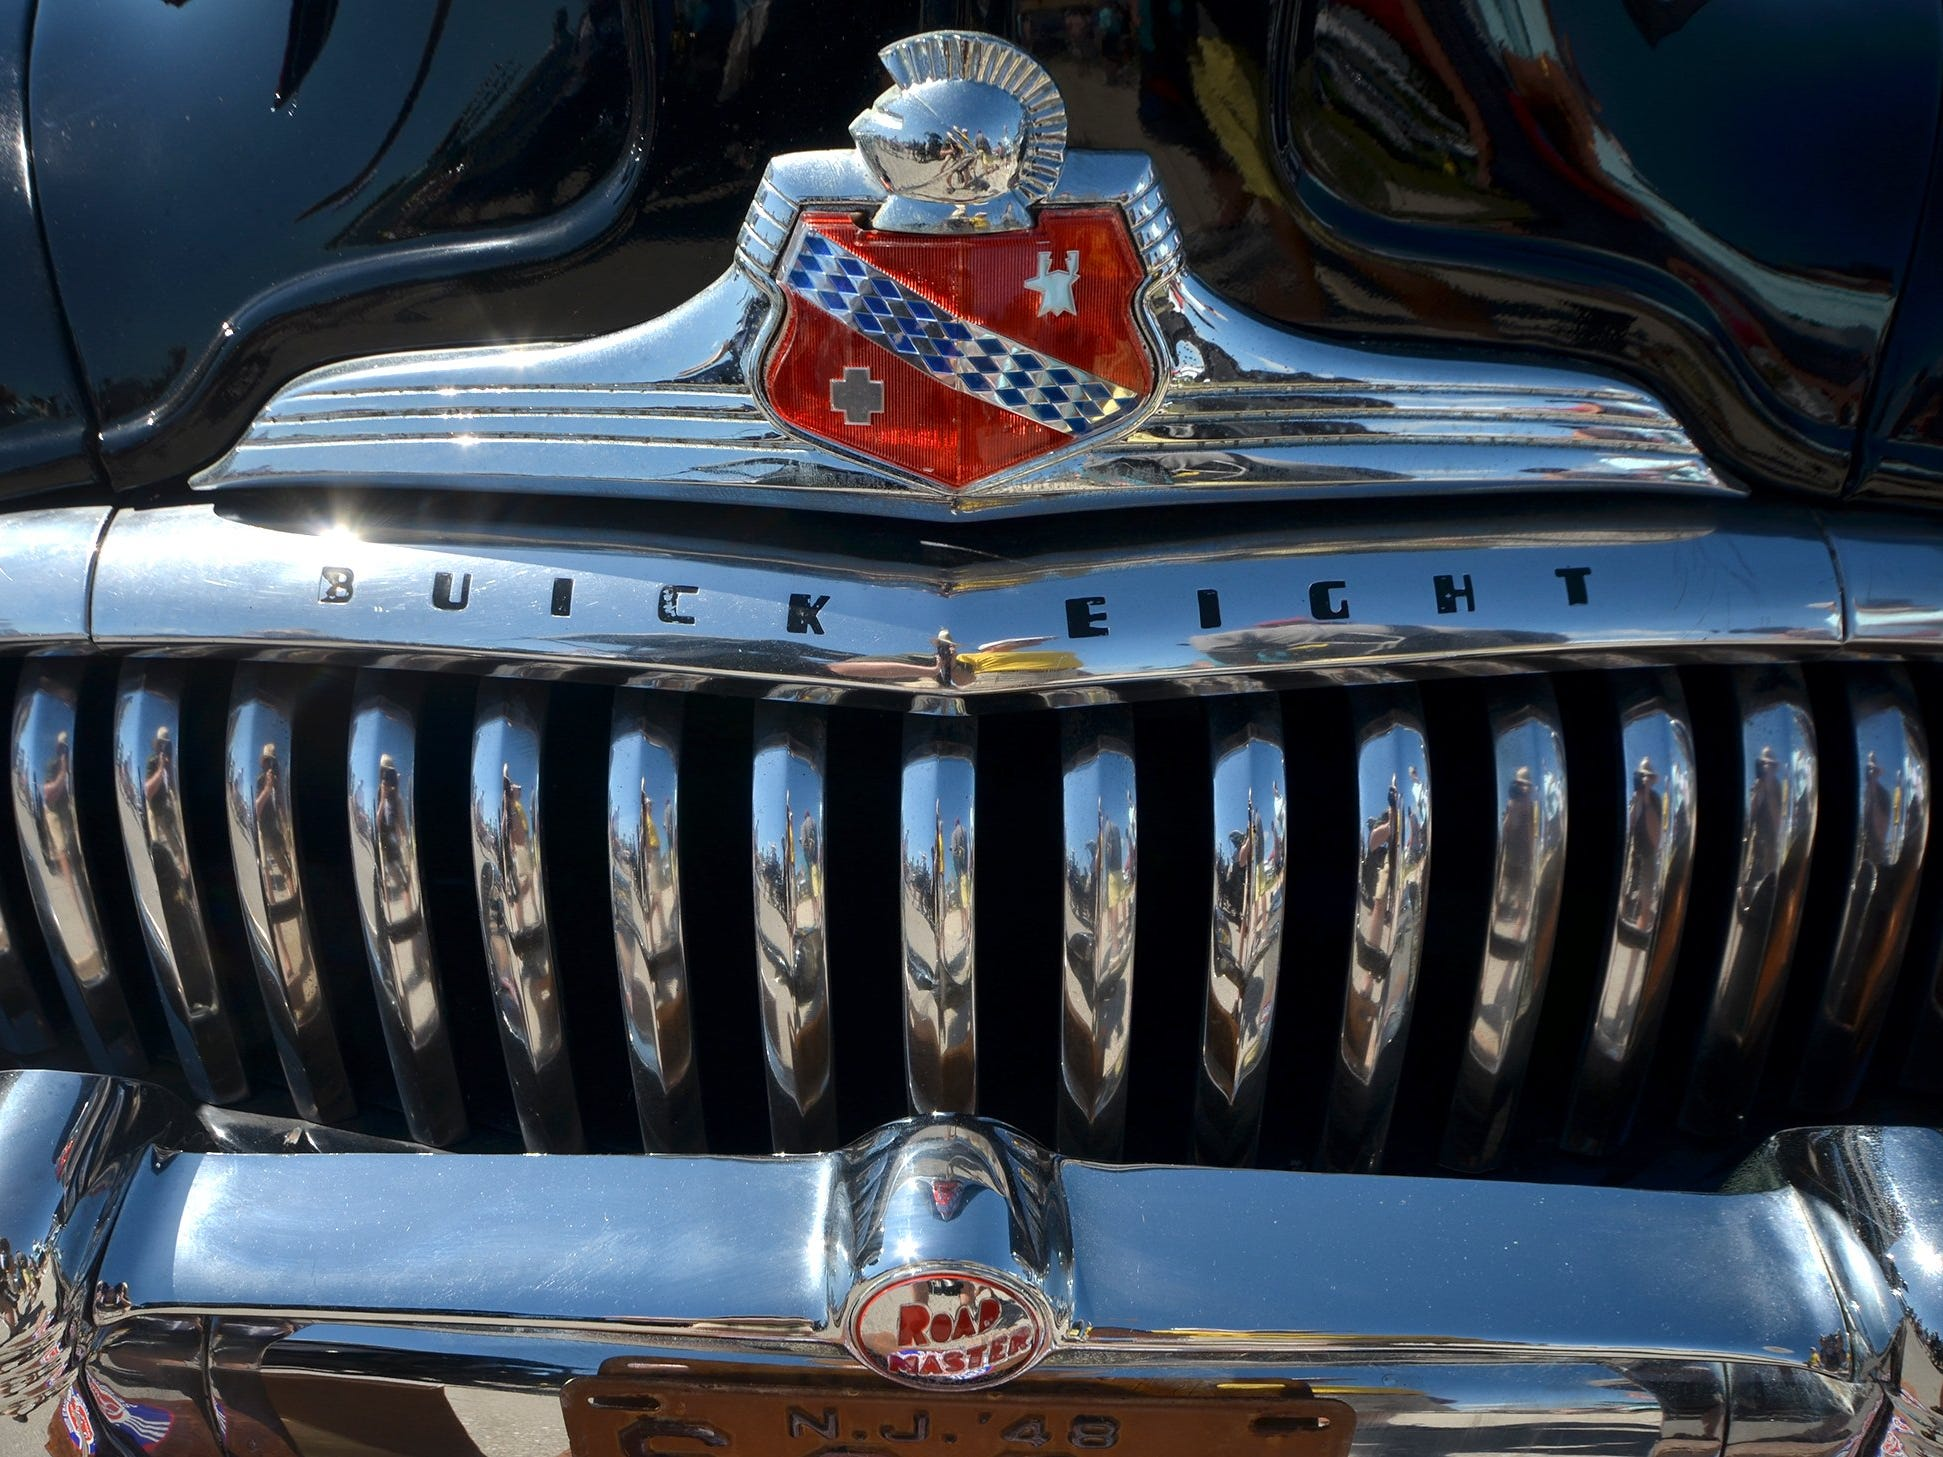 The grille of a classic Buick Roadmaster. The annual Kiwanis car show brought 170 collectible cars and thousands of car enthusiasts to Veterans Community Park on Marco Island Sunday.